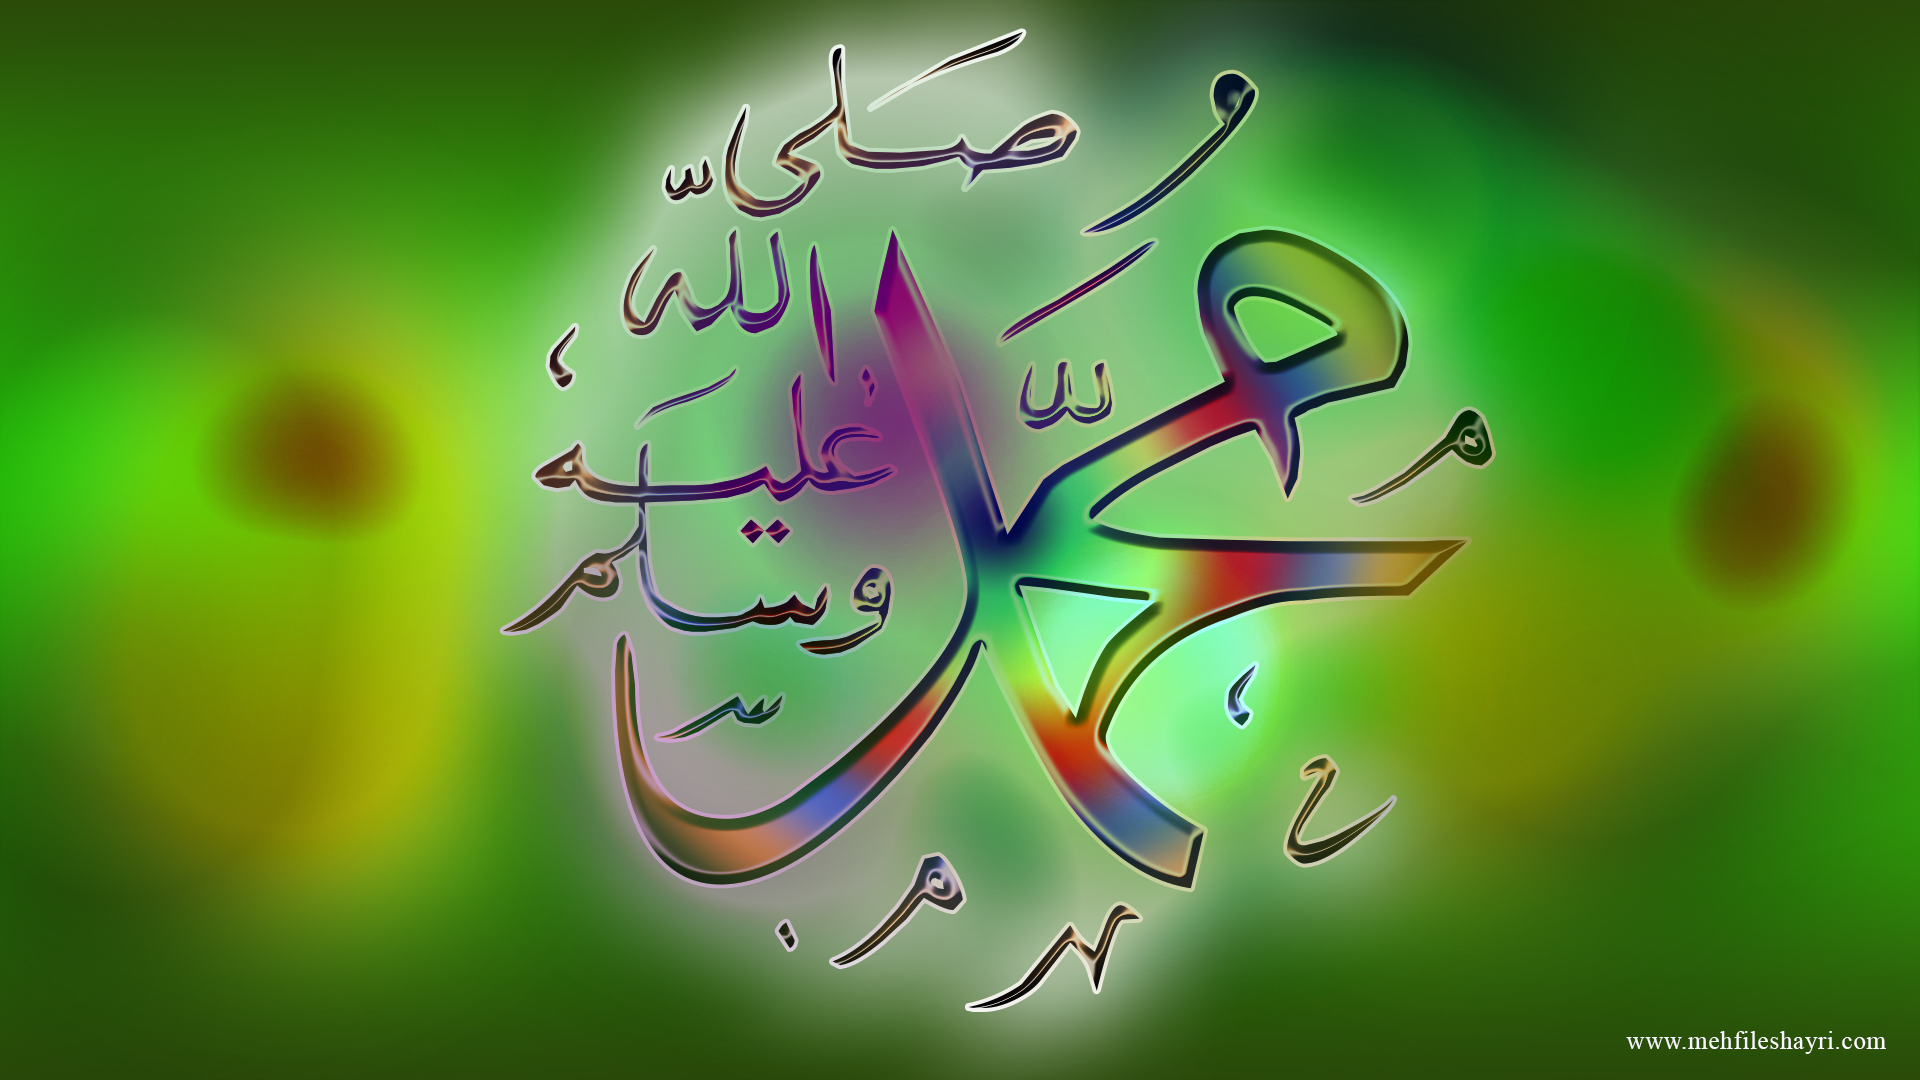 Islamic Photo Gallery | Download Islamic Images